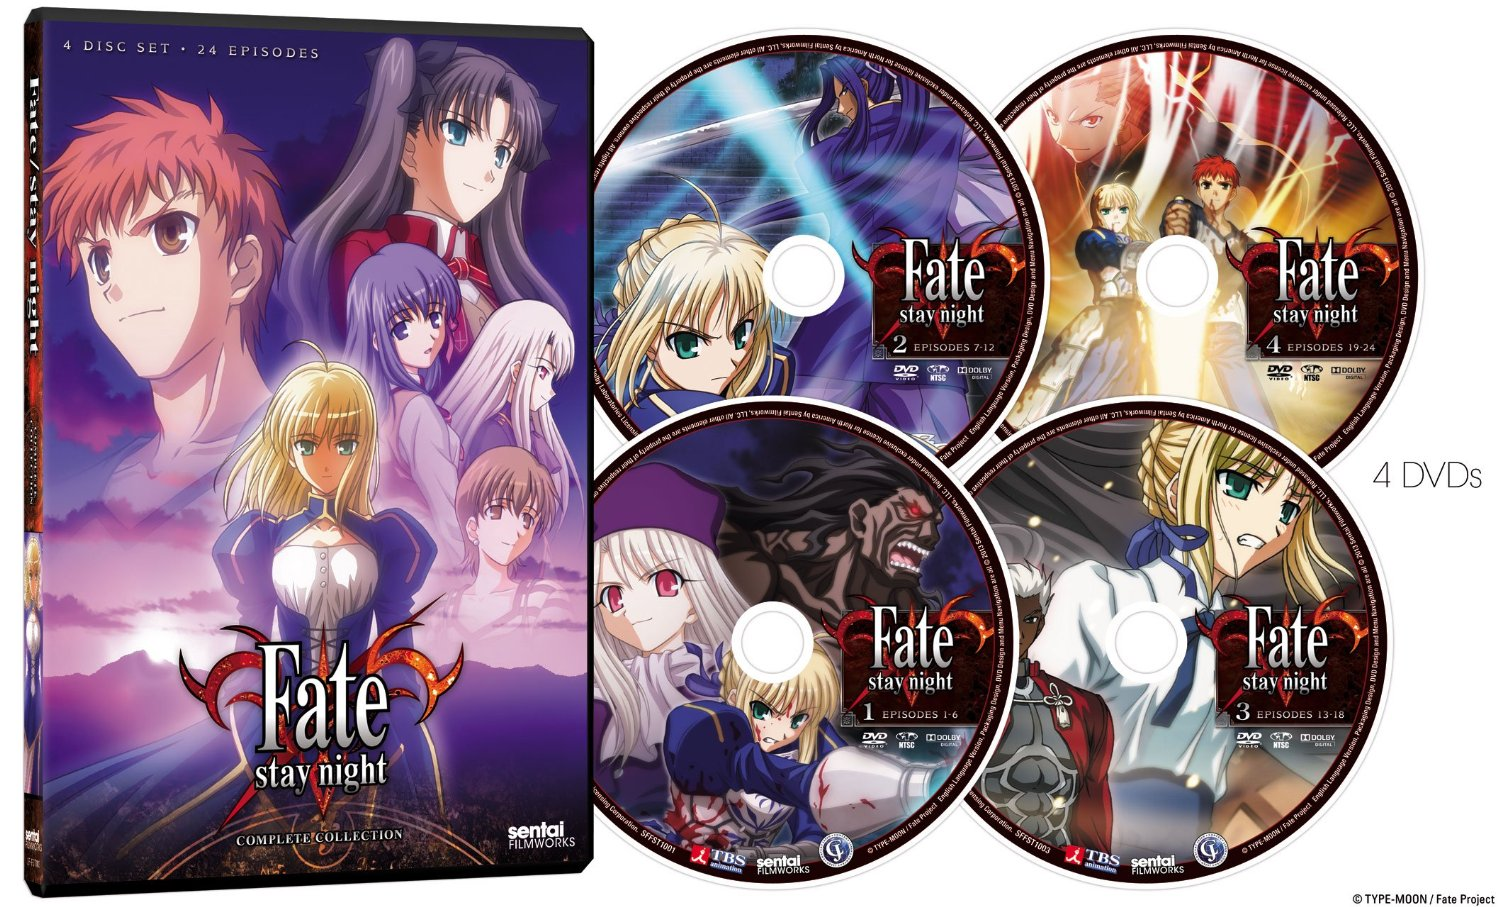 Fate Anime Series Release Dates